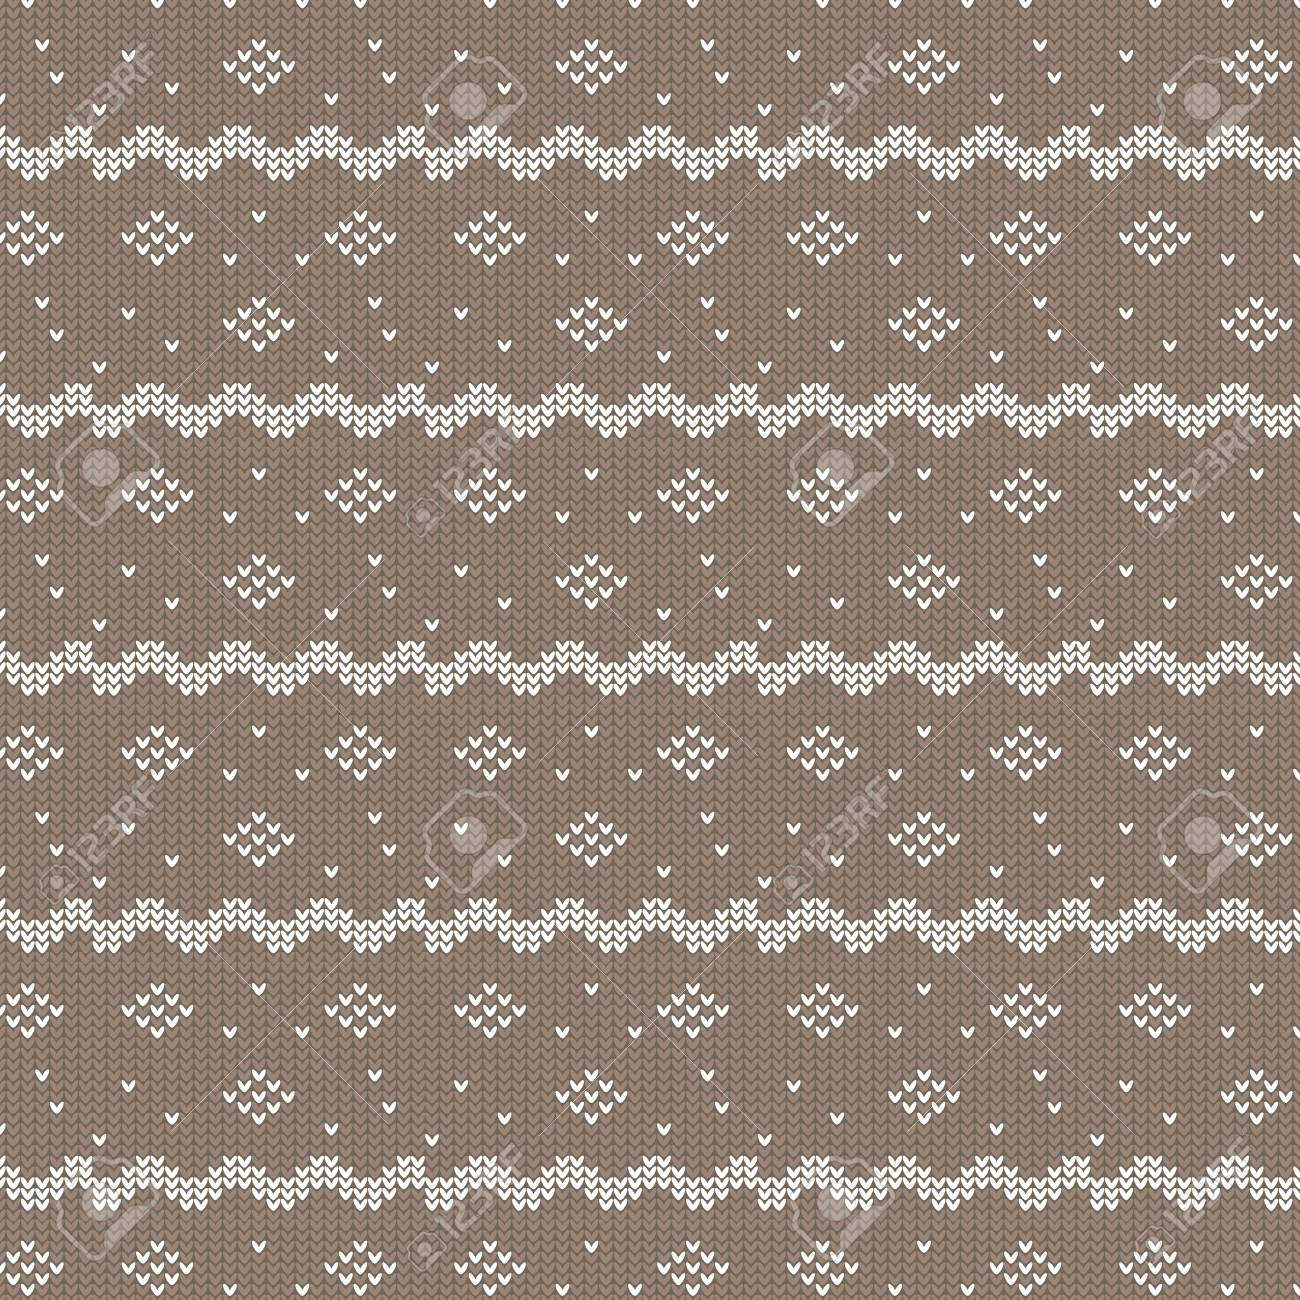 Brown And White Curved Striped With Diamond Shape And Dot Knitting ...